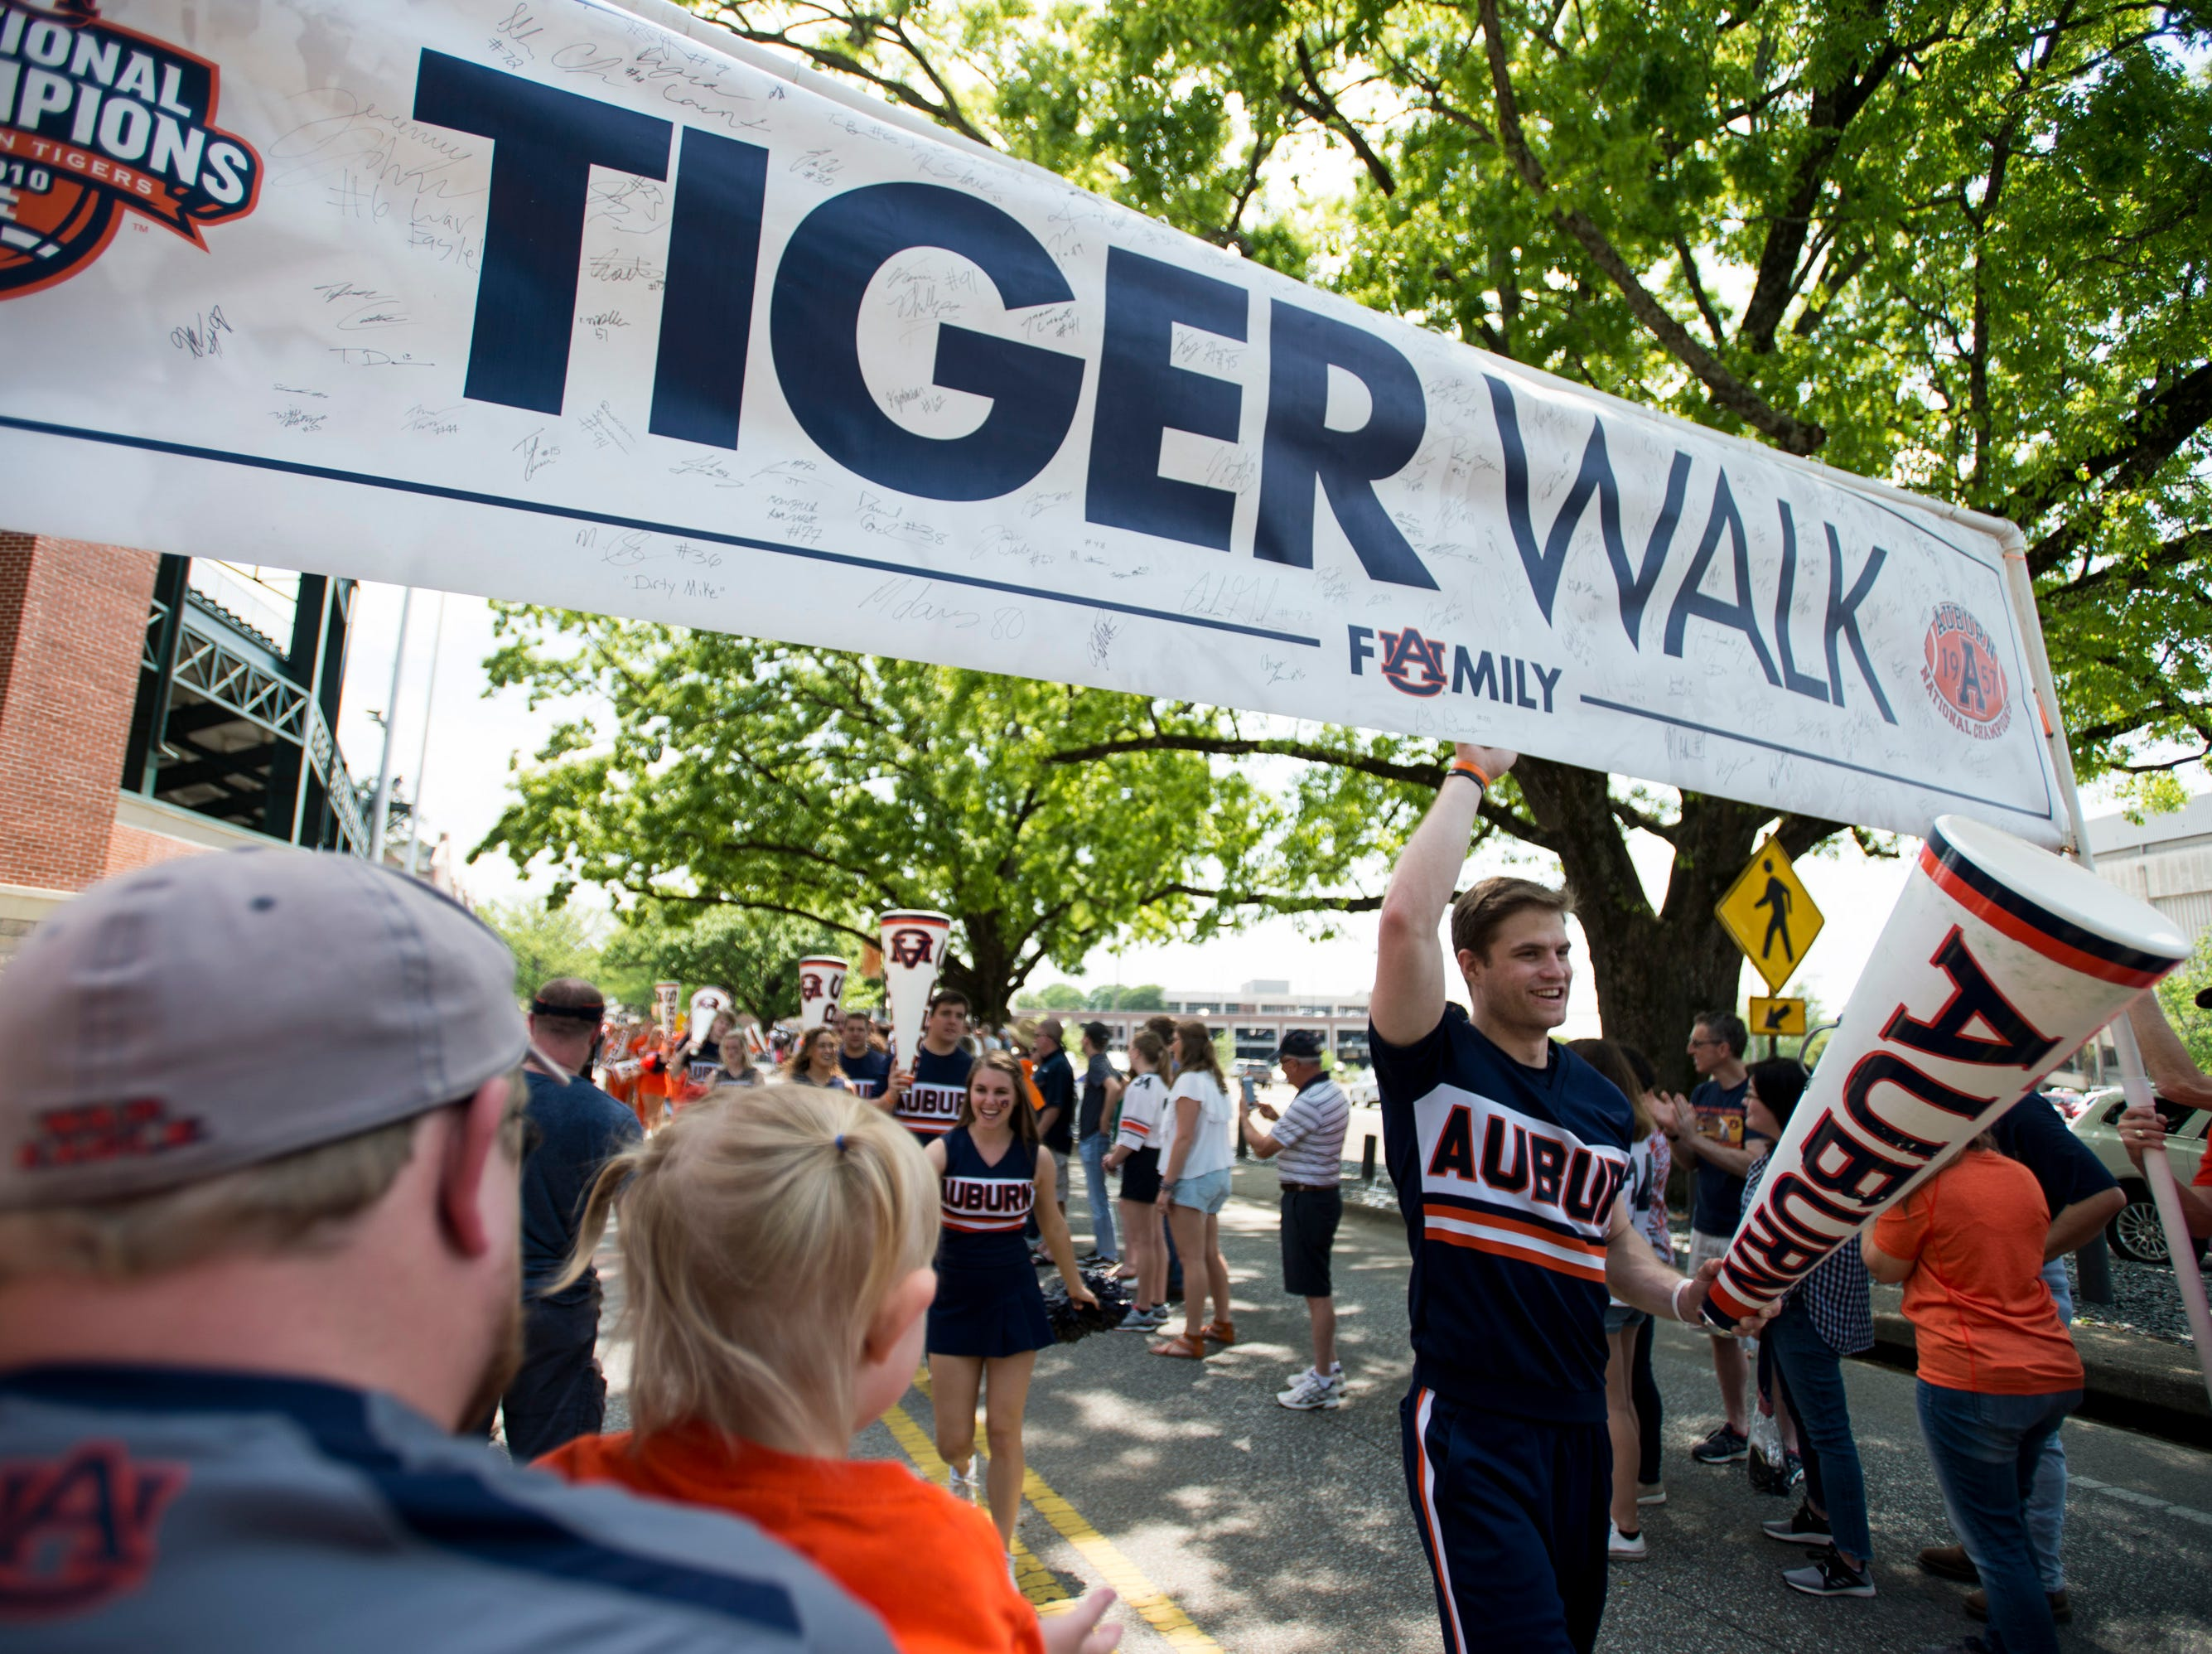 Cheerleaders lead the Tiger Walk during the A-Day spring practice gameat Jordan-Hare Stadium in Auburn, Ala., on Saturday, April 13, 2019.